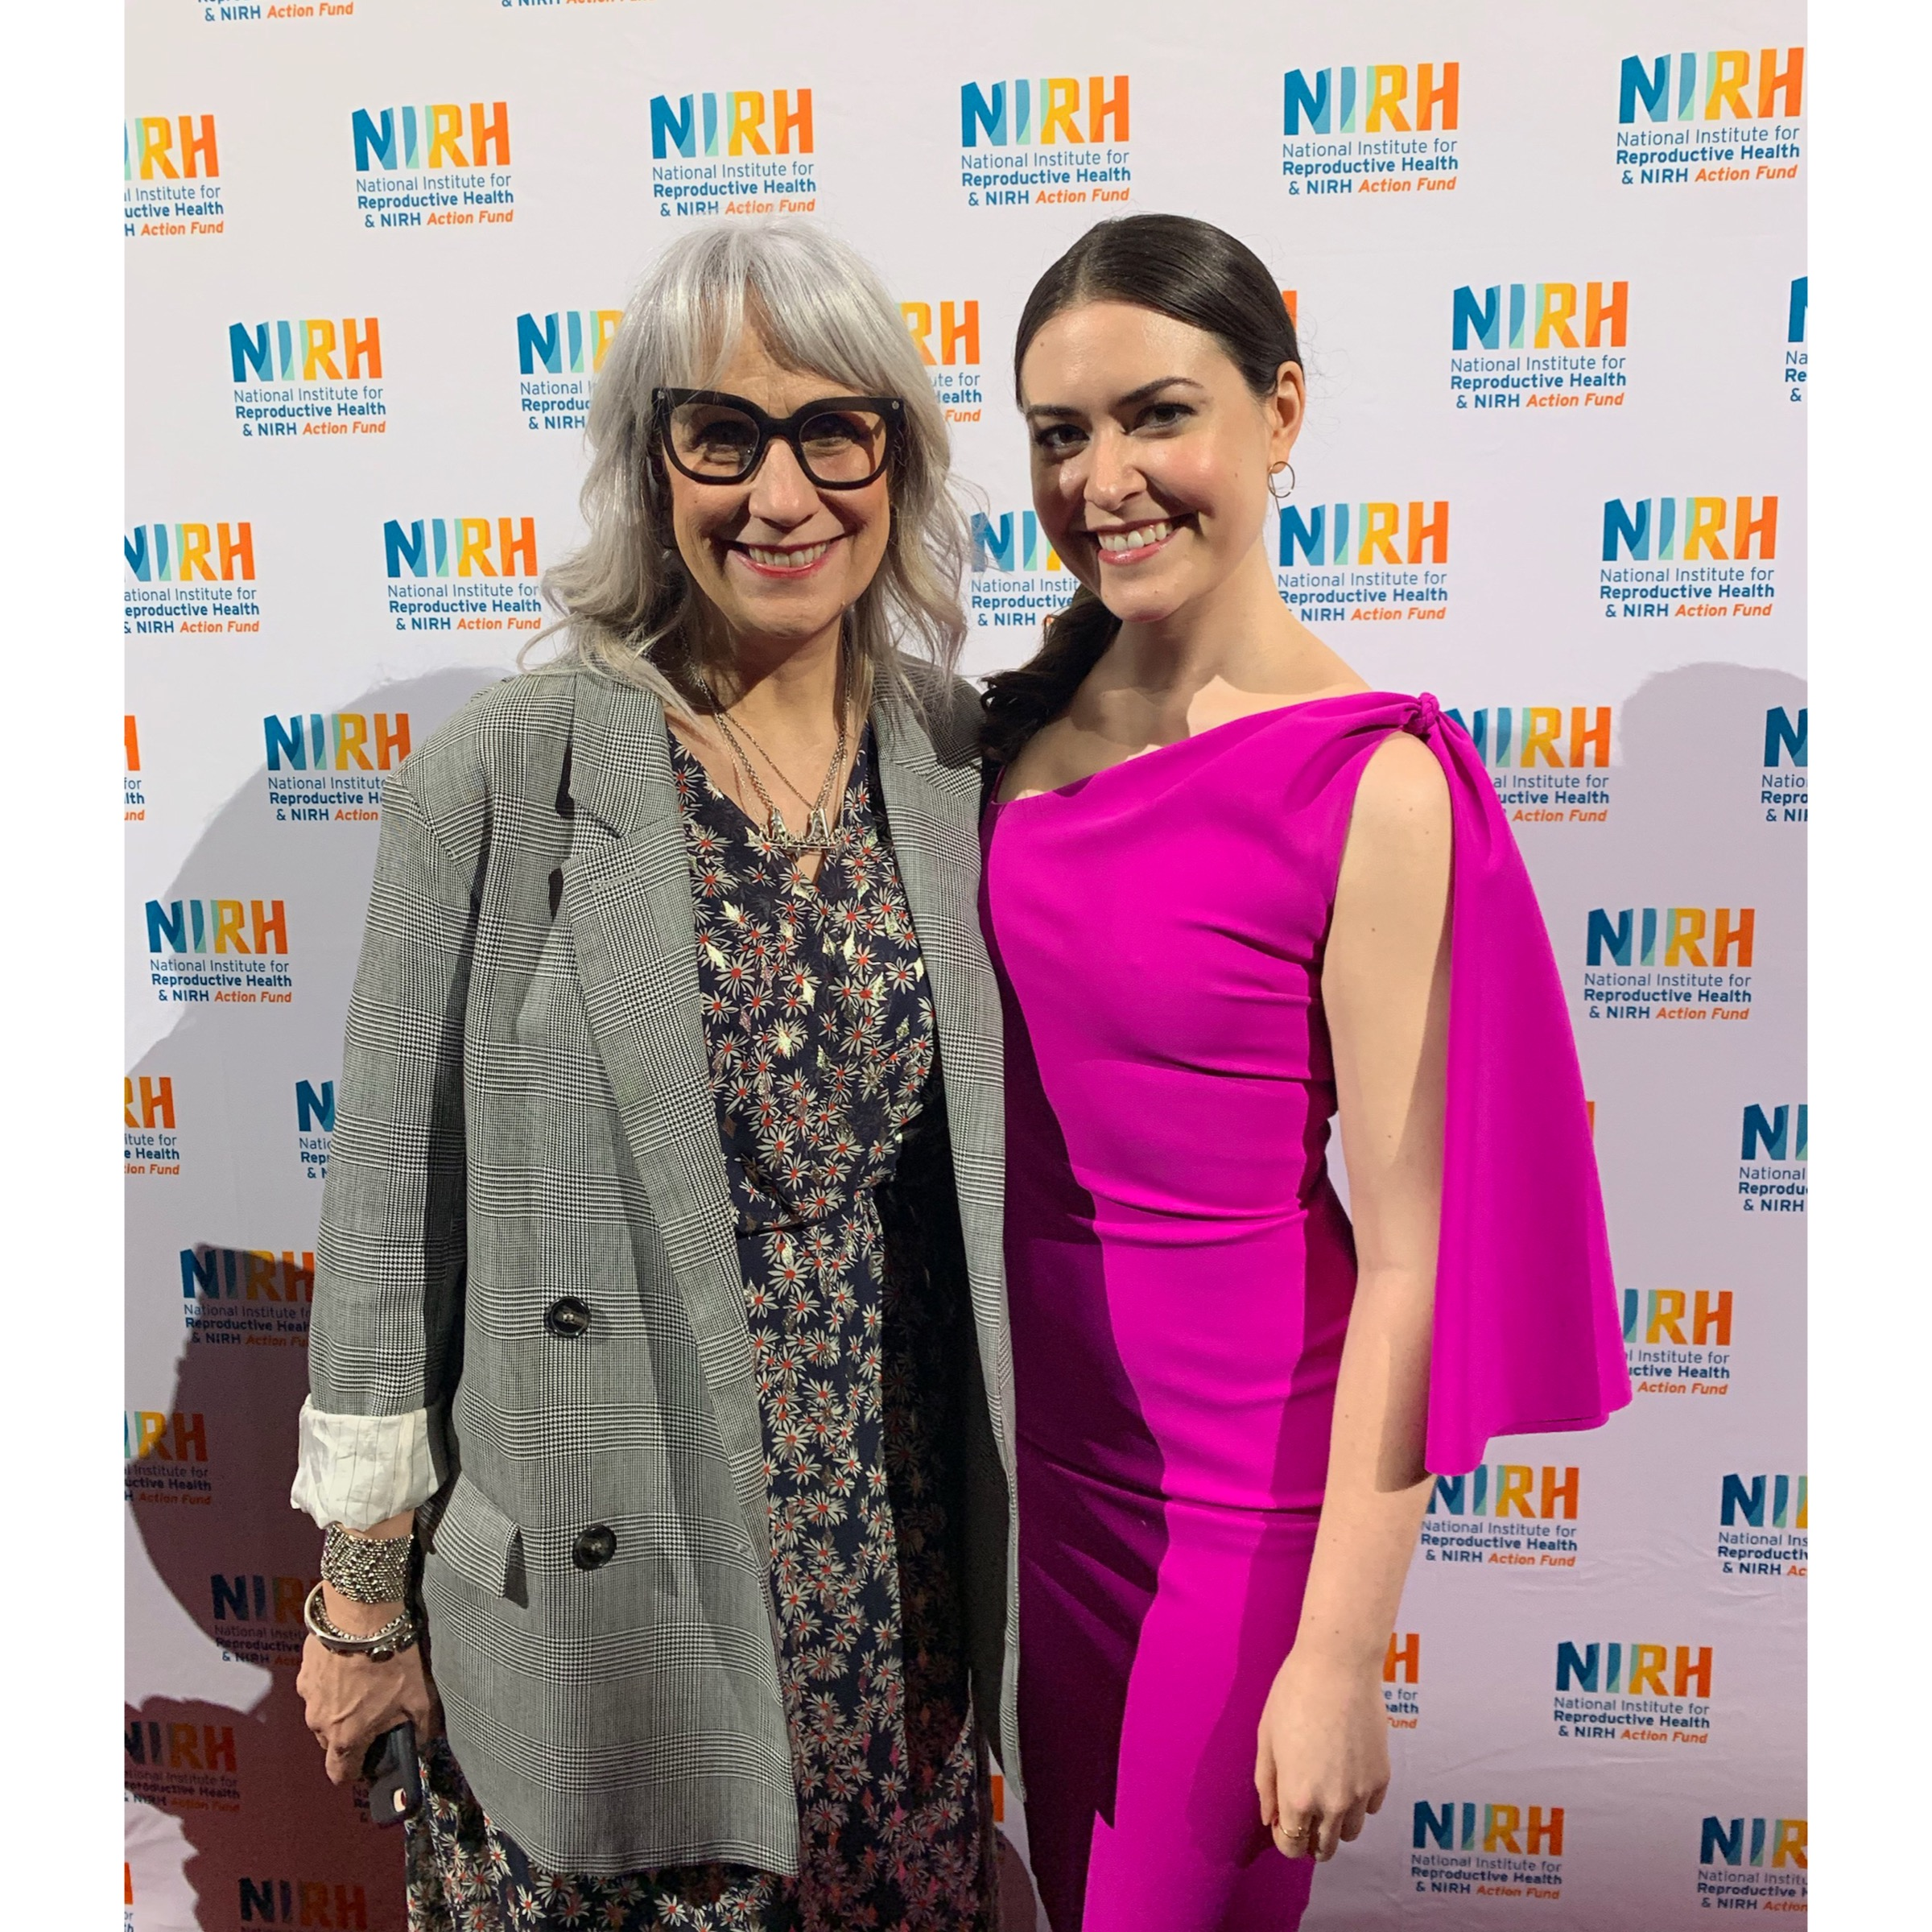 Cait Cortelyou at an event for the National Institute for Reproductive Health